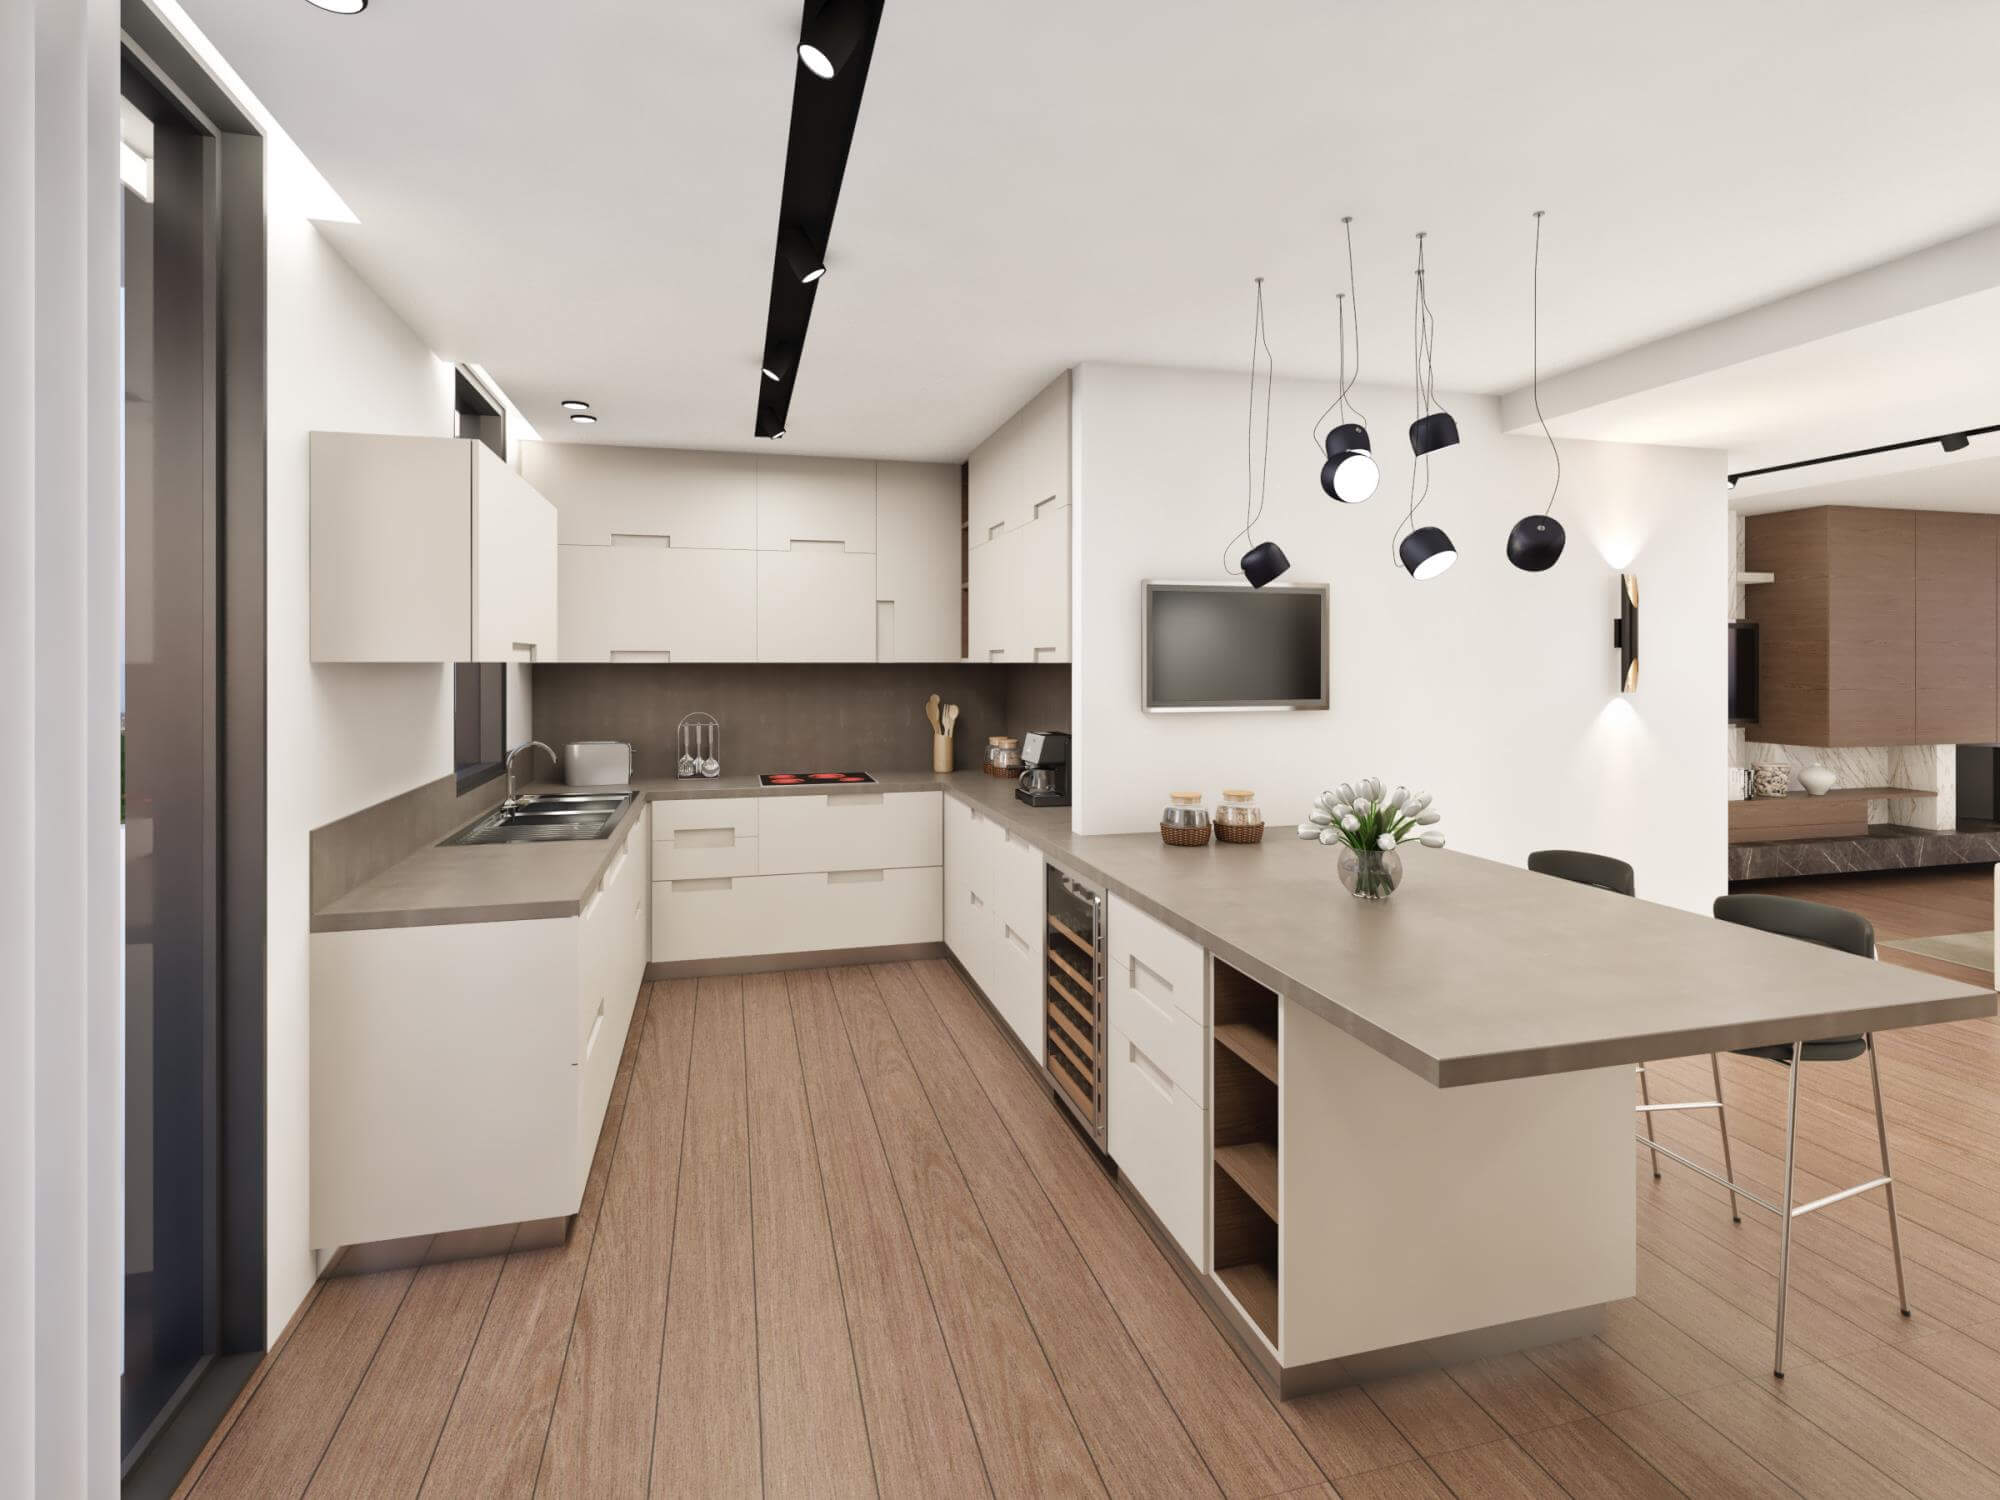 3d redering kitchen with chairs.